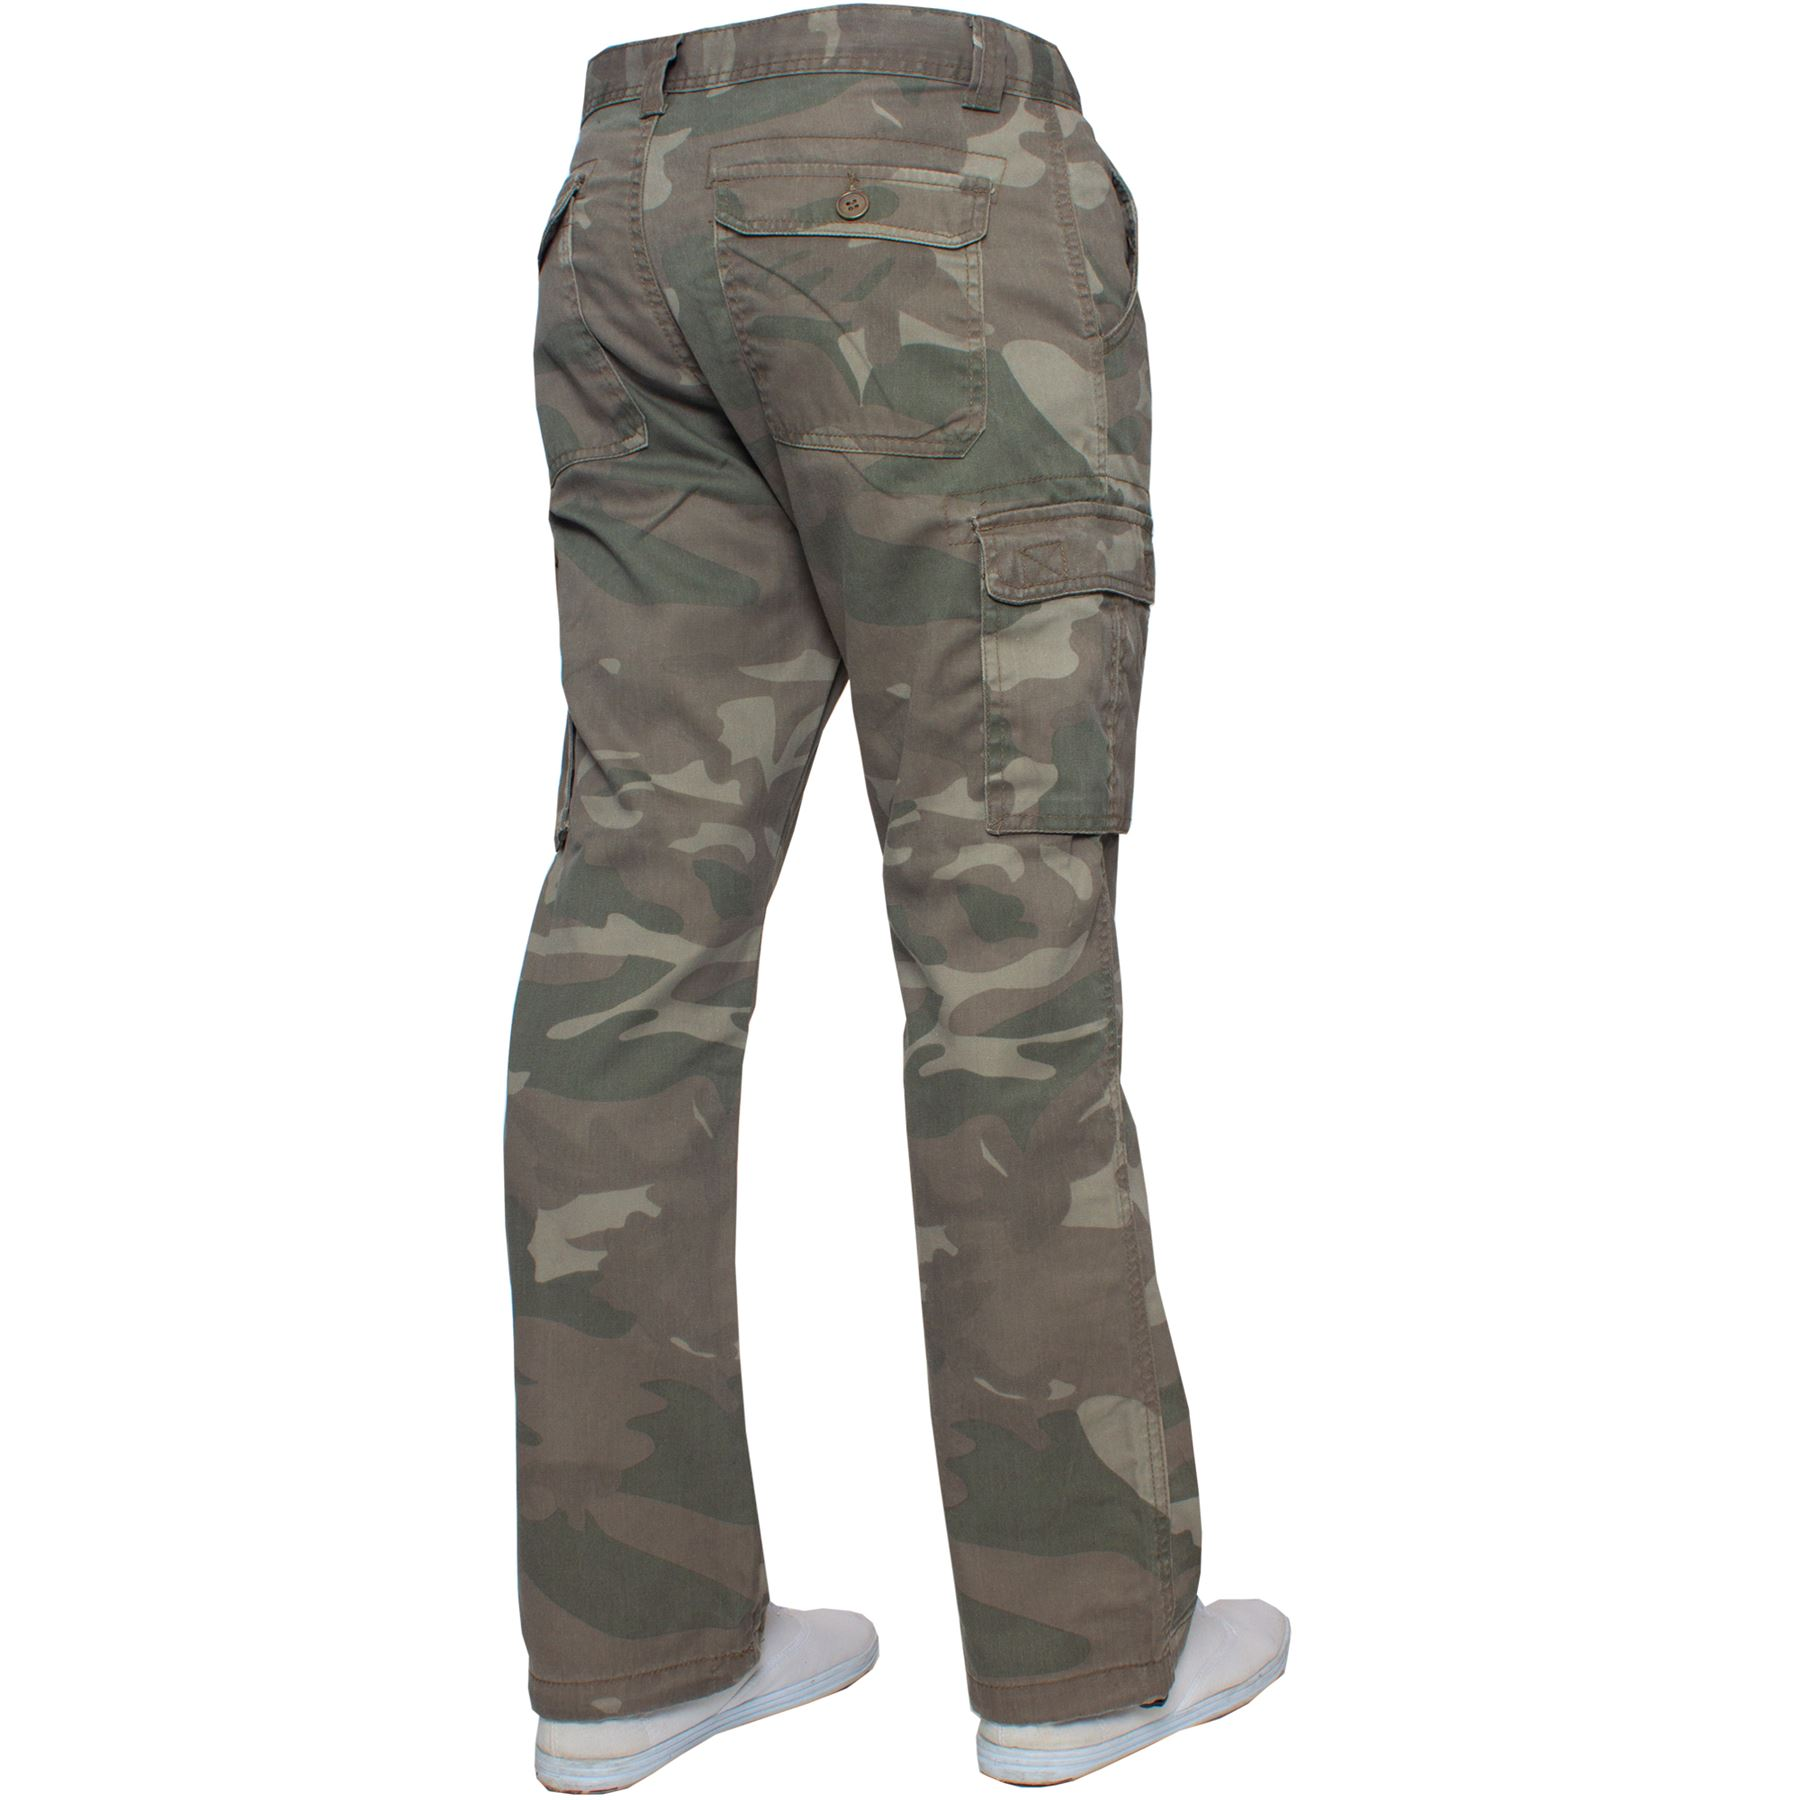 Kruze-Mens-Military-Combat-Trousers-Camouflage-Cargo-Camo-Army-Casual-Work-Pants thumbnail 26